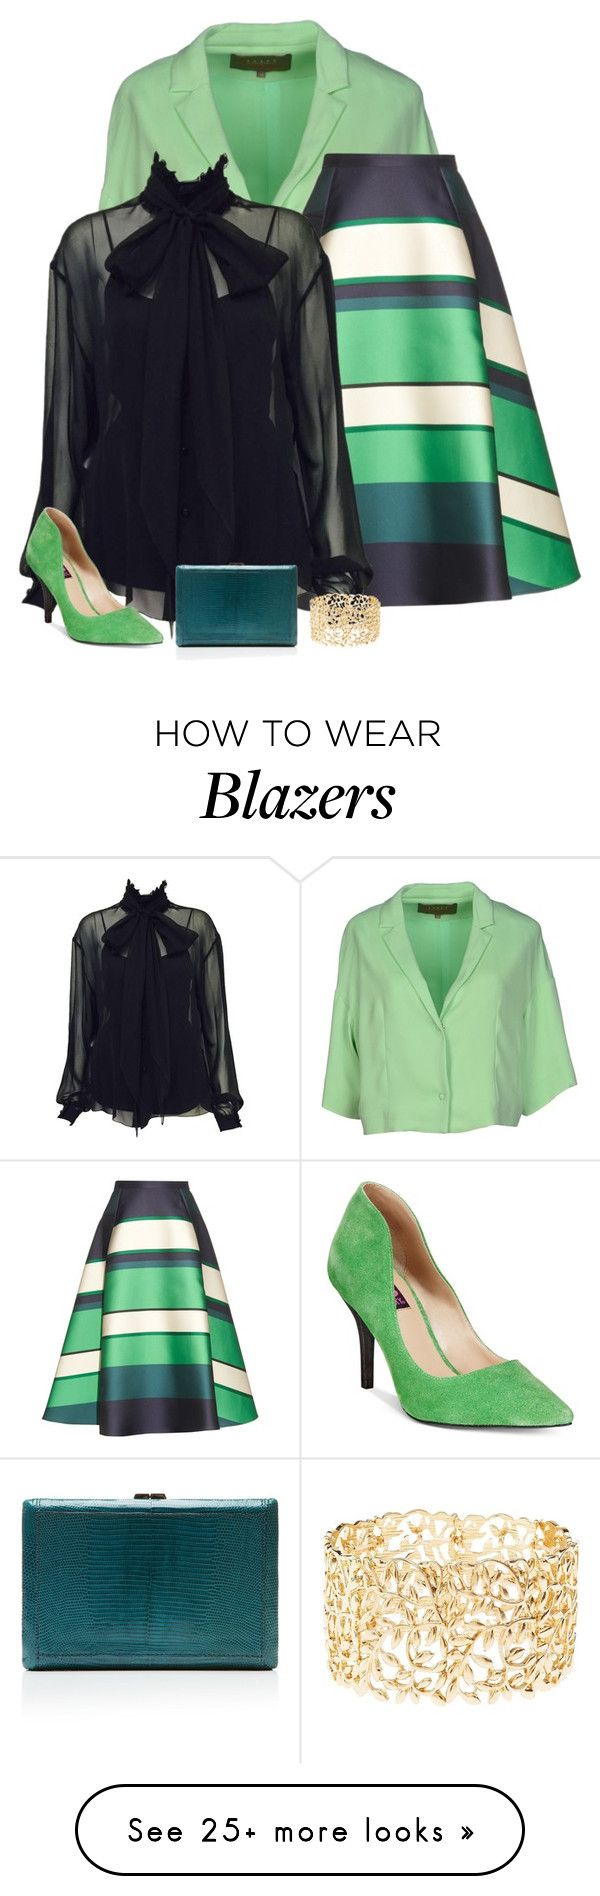 """mint & navy"" by divacrafts on Polyvore featuring Space Style Concept, Lanvin, Karl Lagerfeld, Mojo Moxy, VBH, Charlotte Russe and Original"